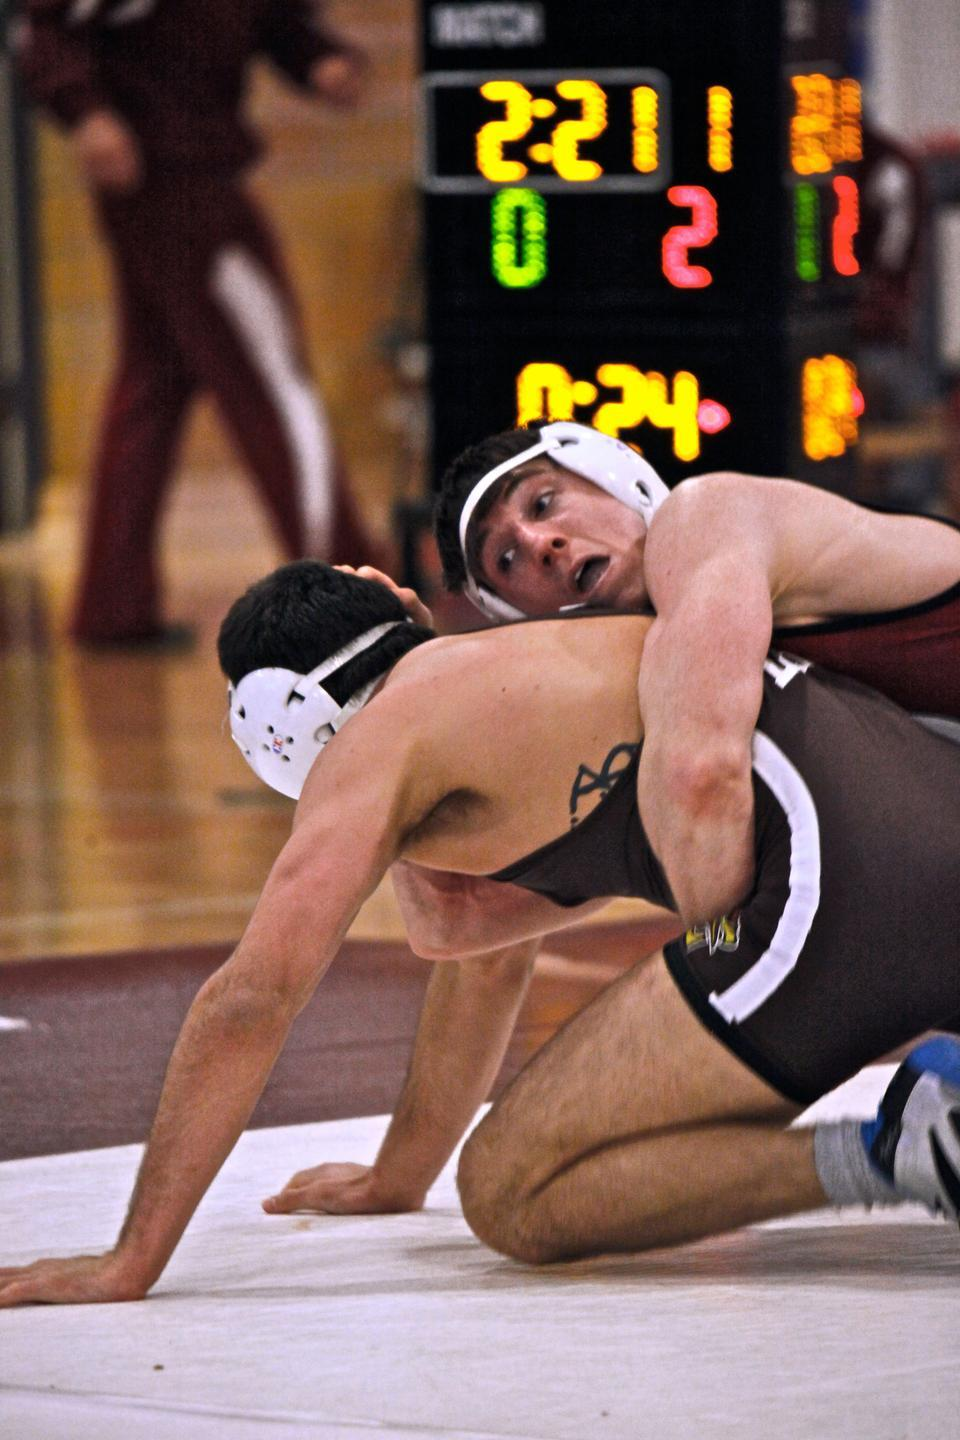 Crimson wrestling co-captain J.P. O'Connor, shown here in earlier action, captured the national title at 157 lbs. The Harvard star joined Jesse Jantzen '04 and John Harkness '38 as the only Crimson competitors to win a championship.